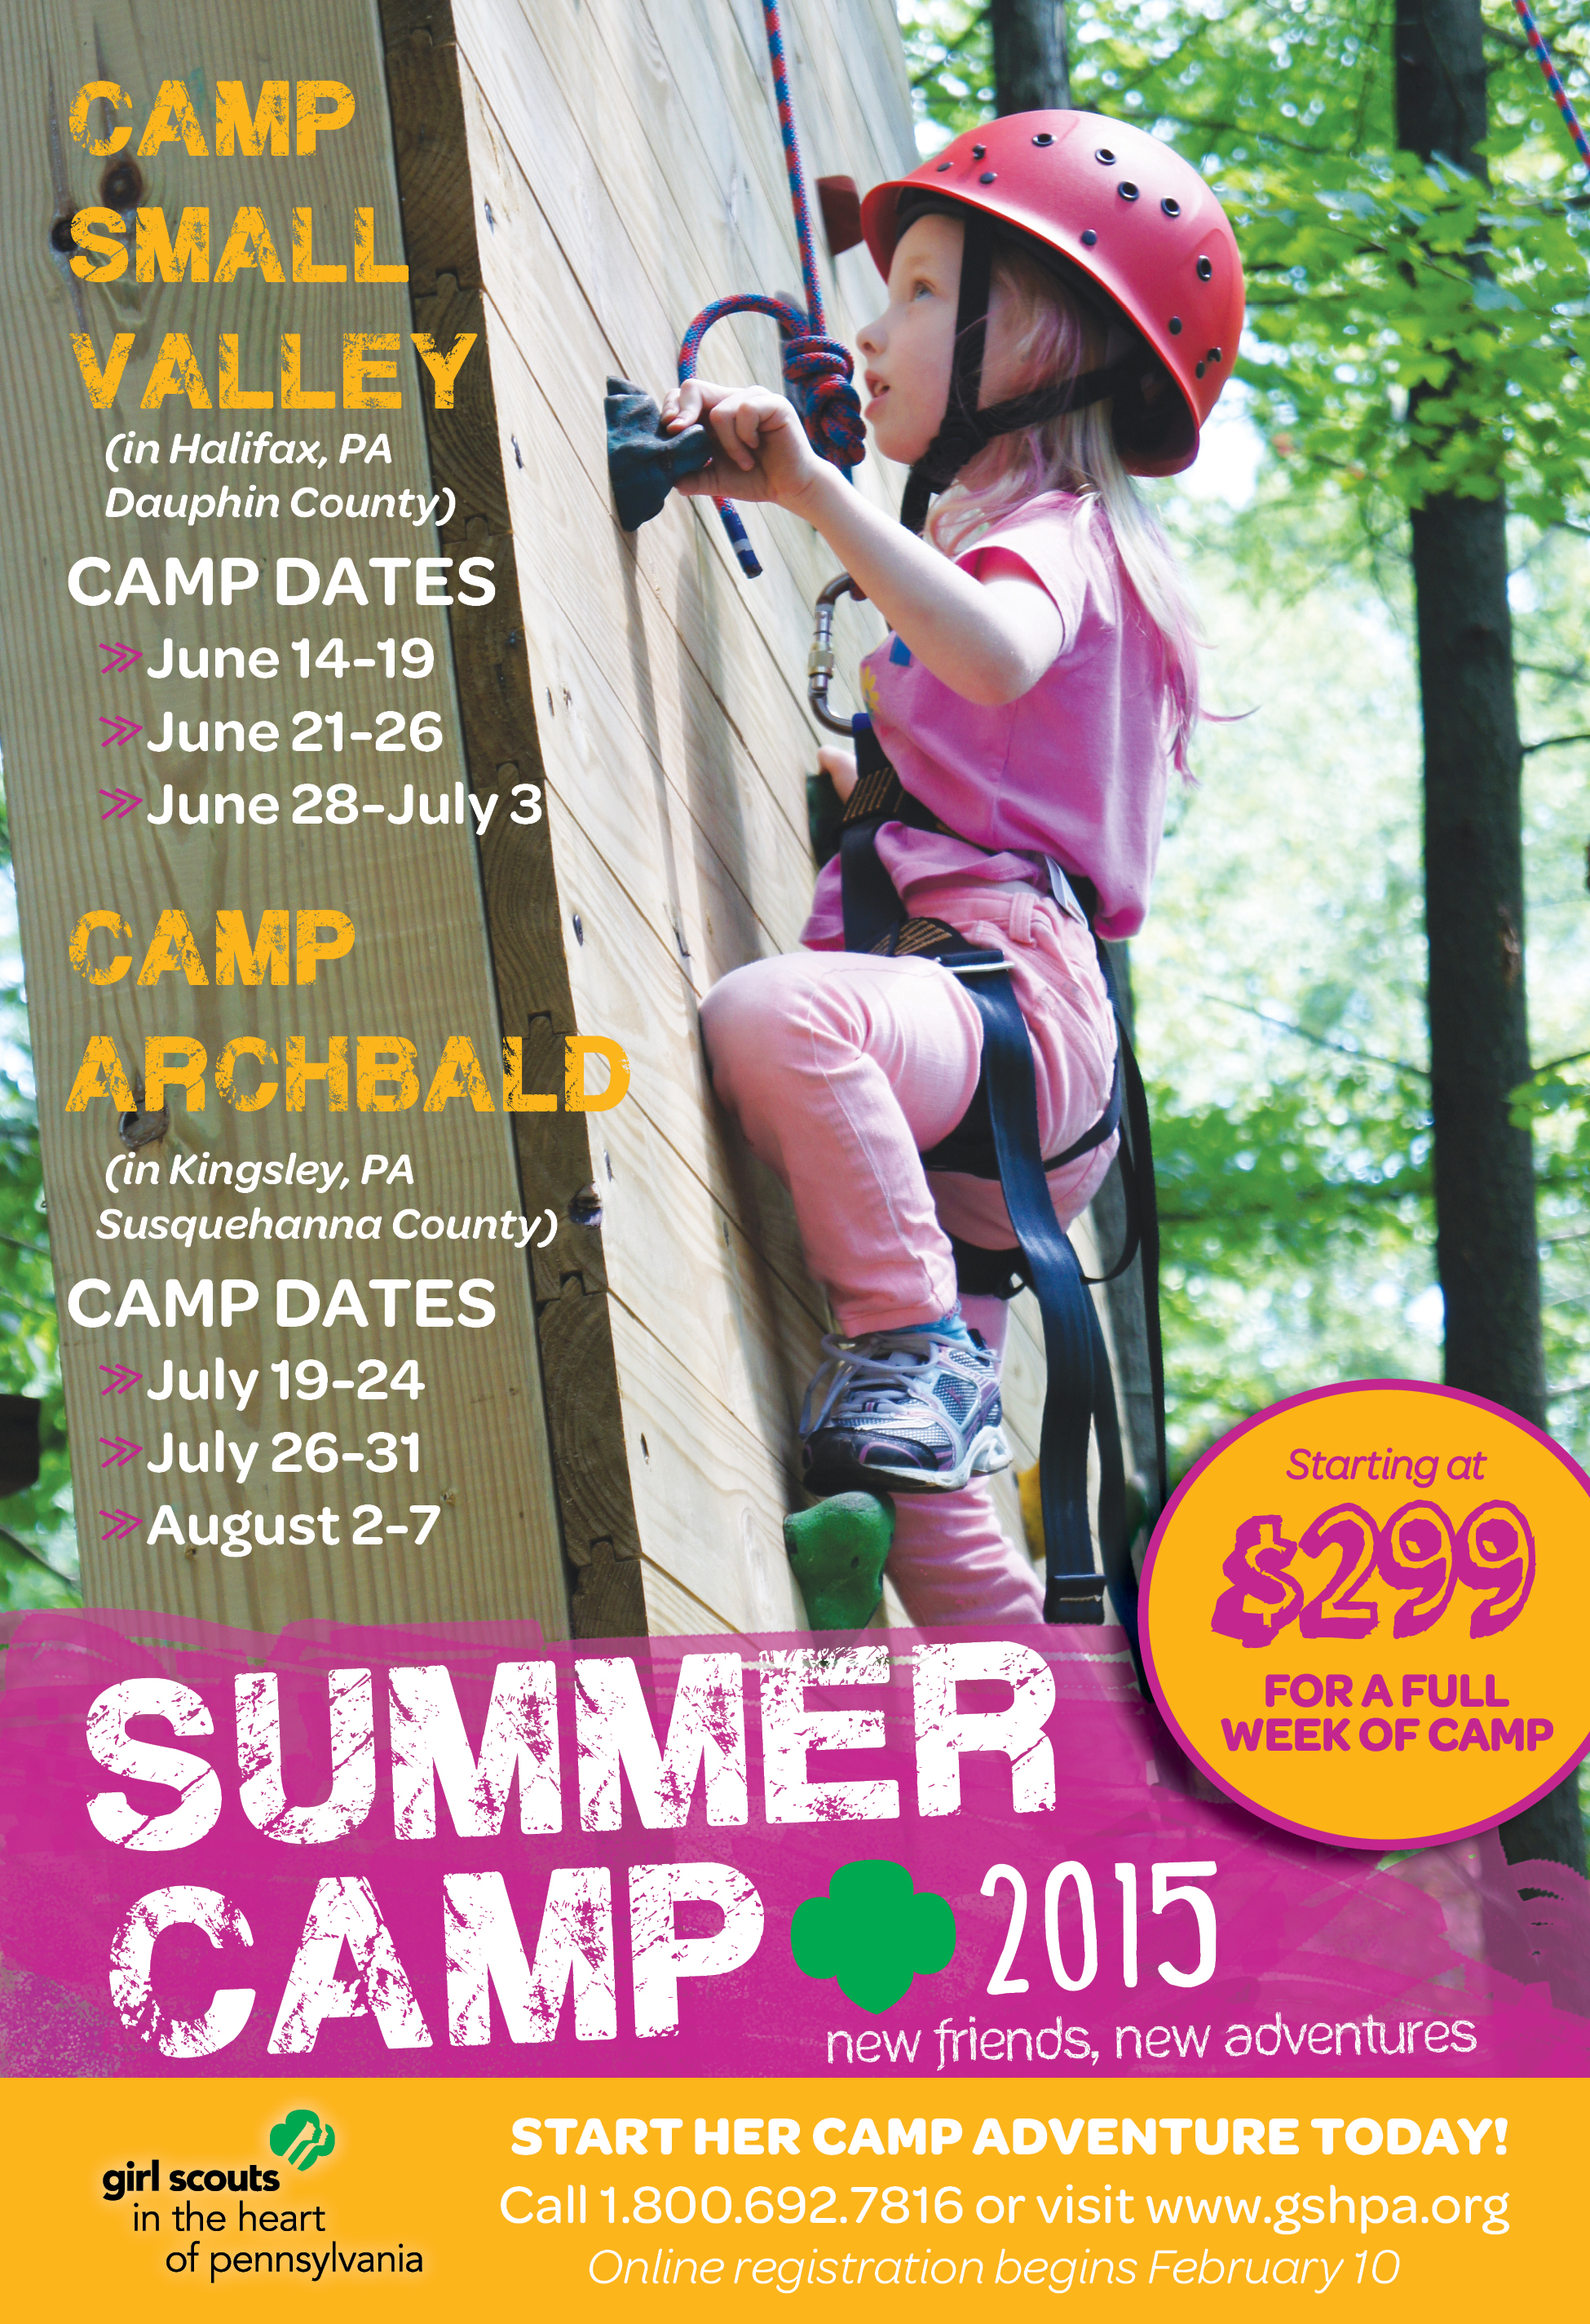 Summer Program - Hiking | Girl Scouts in the Heart of Pennsylvania